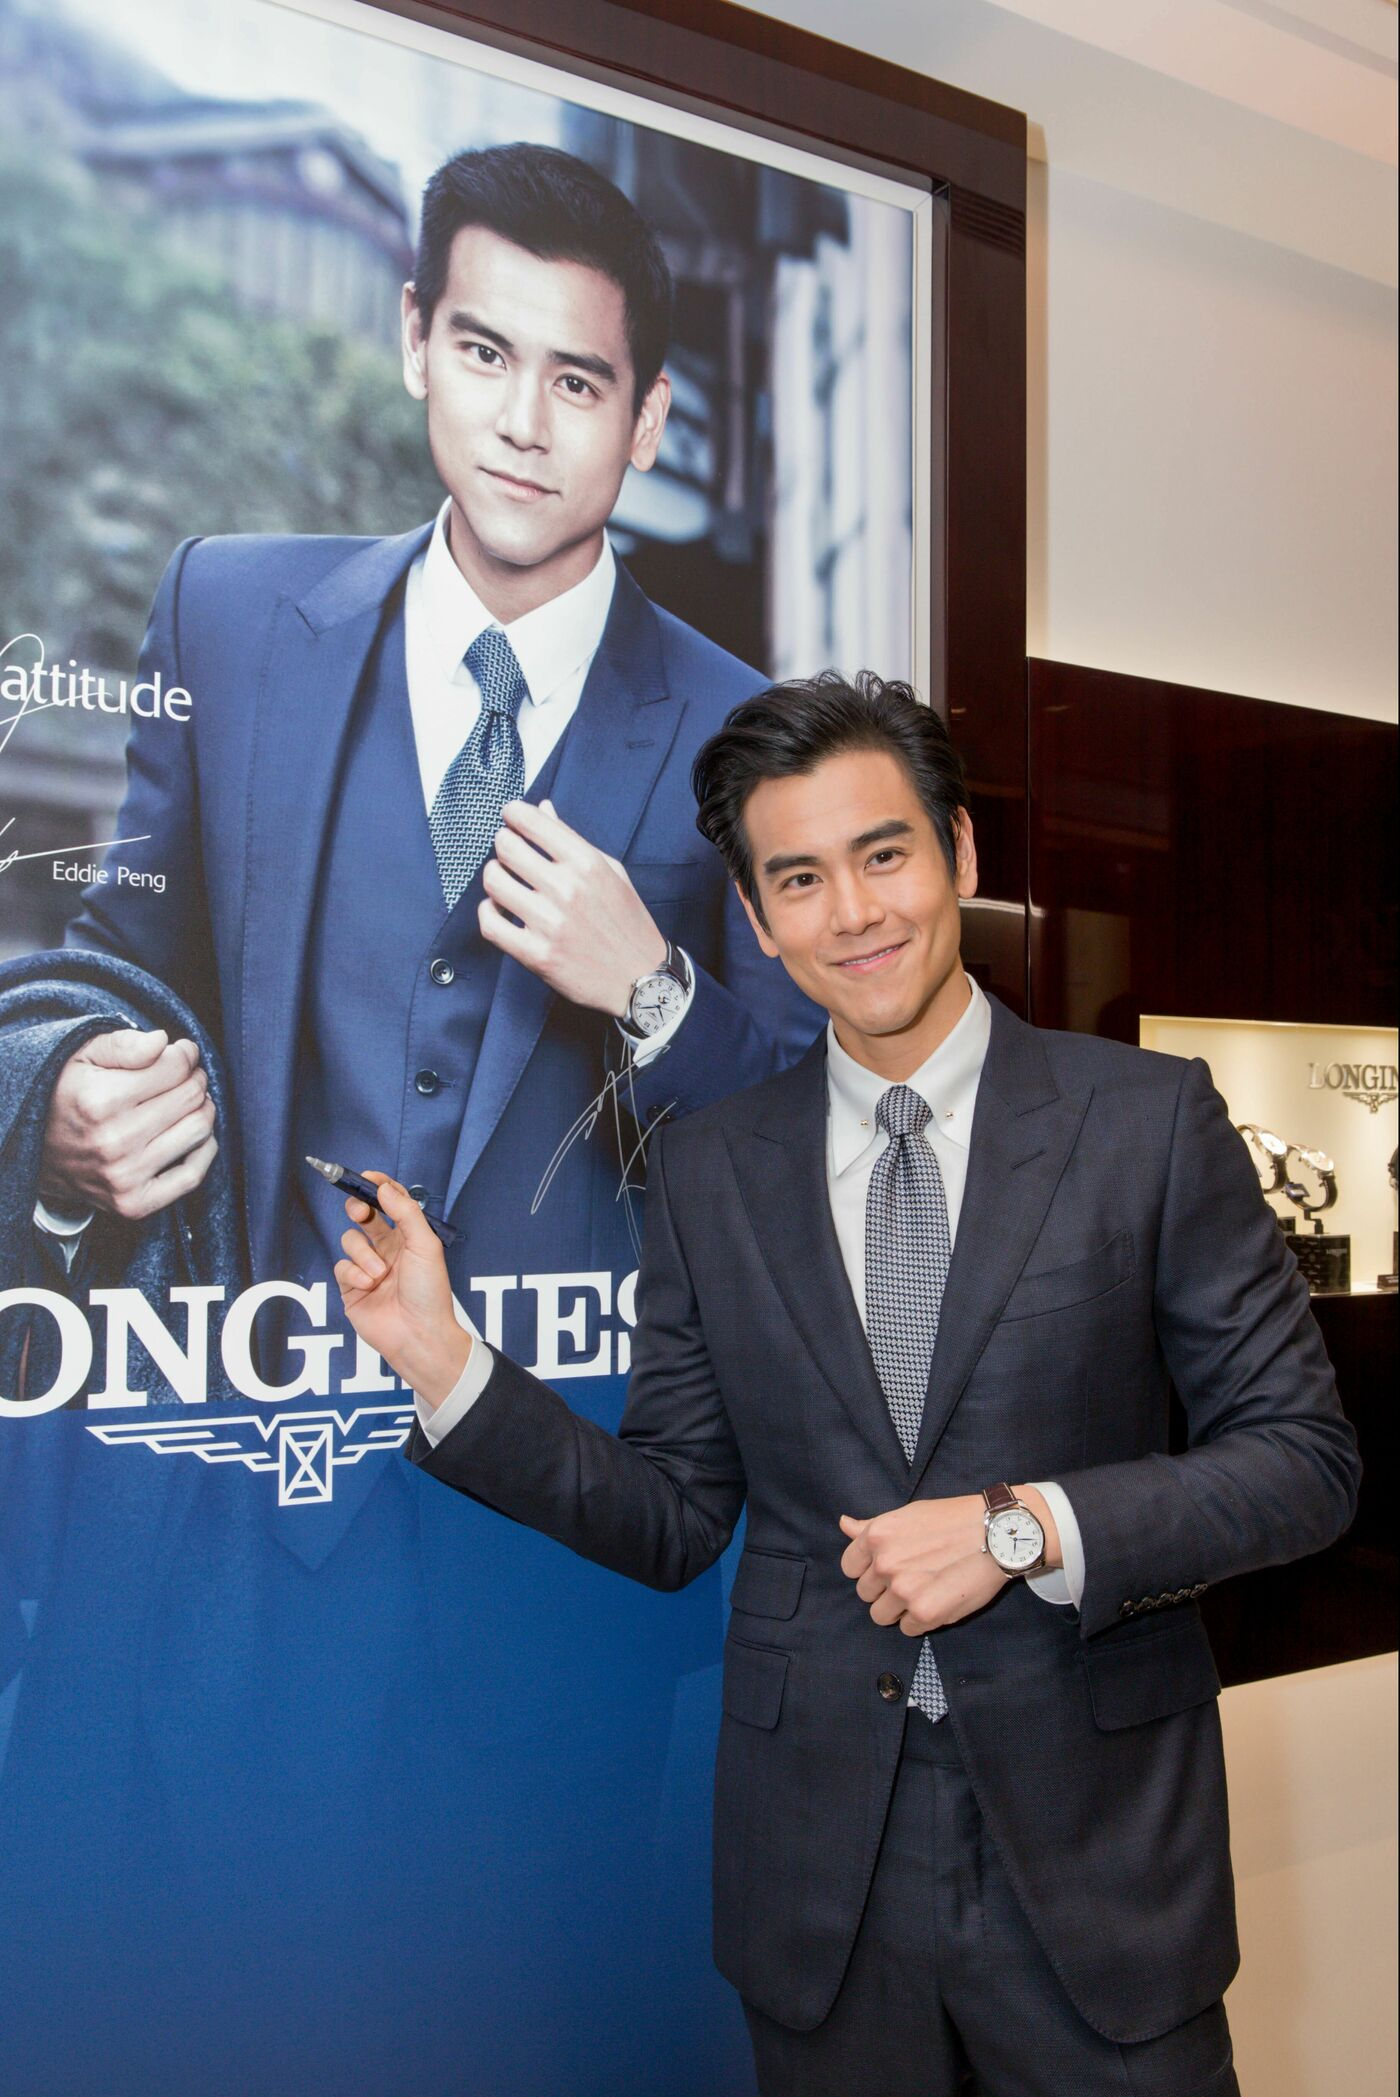 Longines Corporate Event: Grand opening of Longines Flagship Boutique and Super Heritage Corner in Macau S.A.R., China in presence of Eddie Peng 3